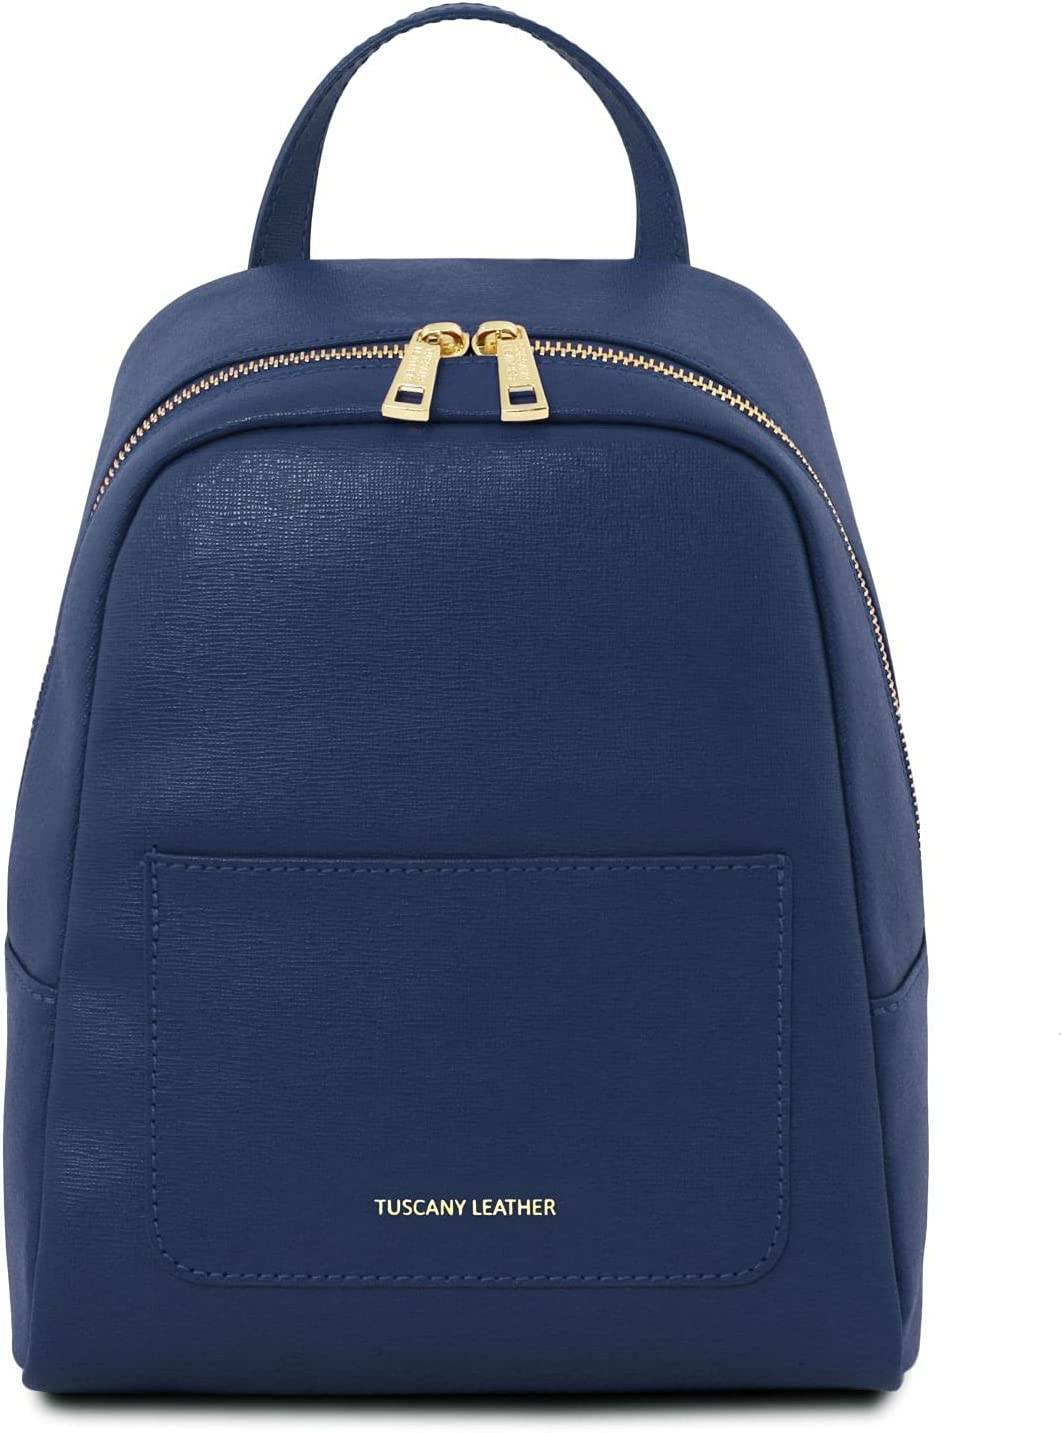 Max 67% OFF Tuscany Leather TLBag Small Saffiano Manufacturer regenerated product women for leather backpack